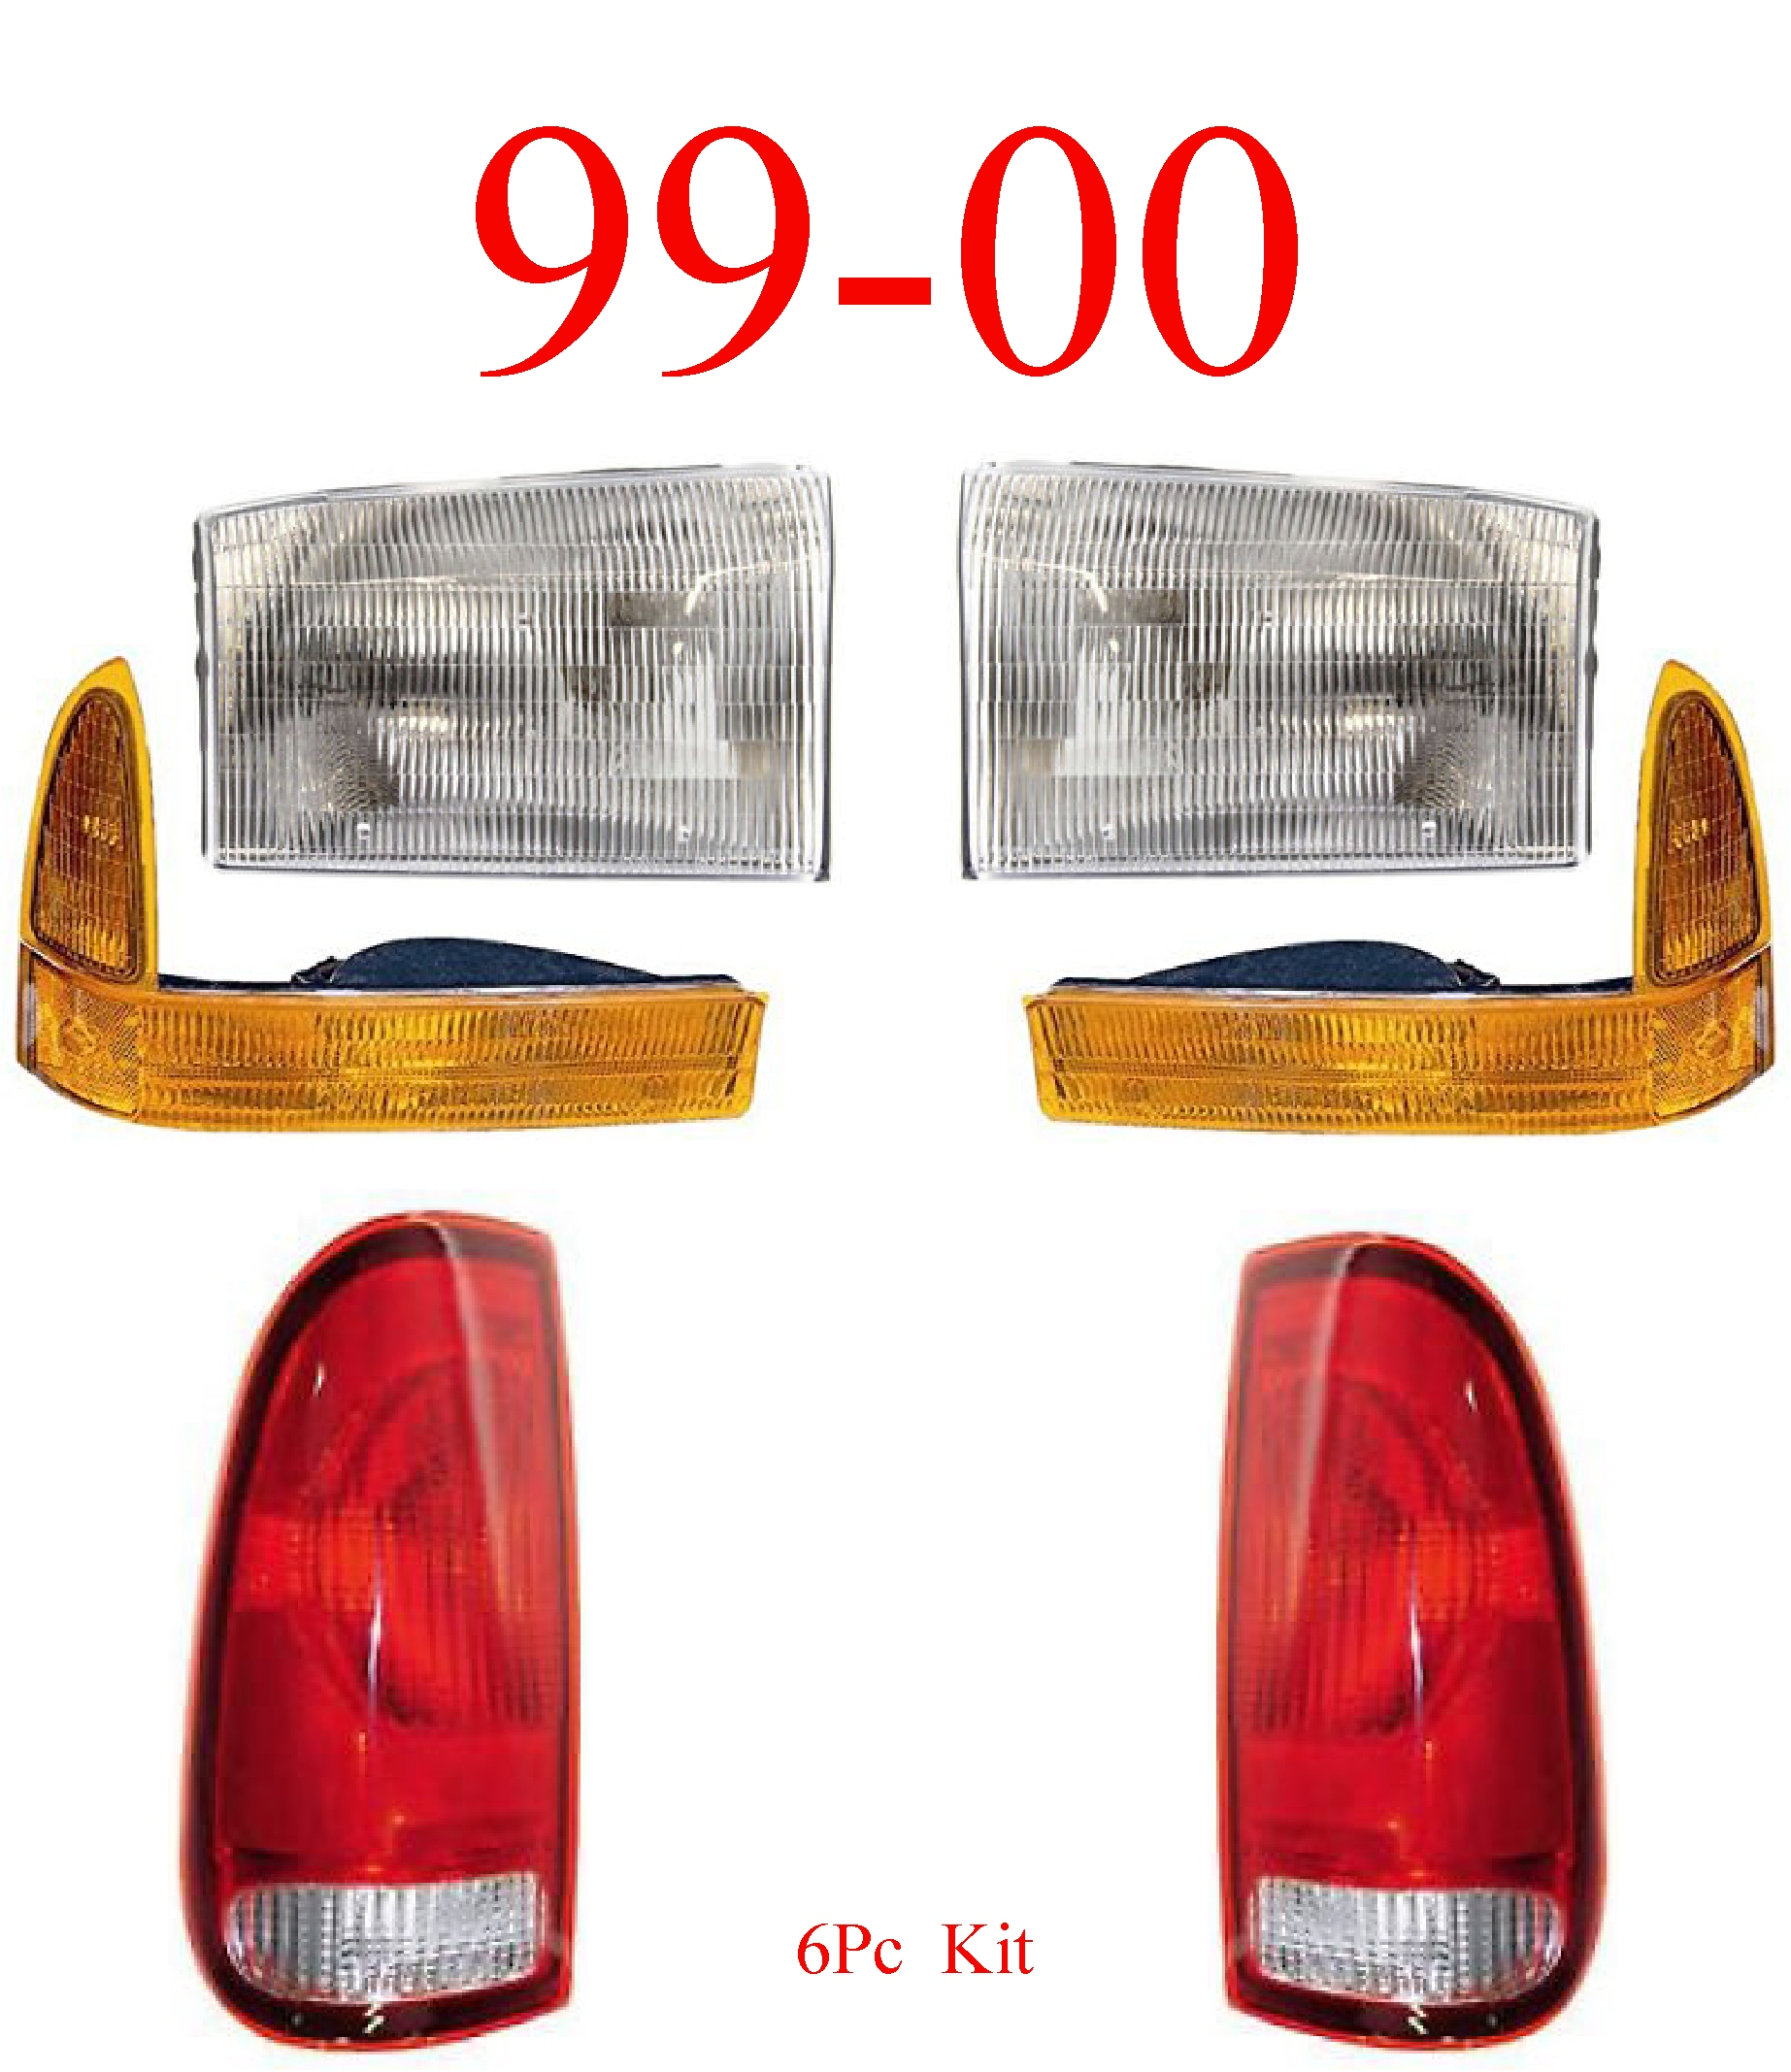 99-00 Ford Super Duty 6Pc Head, Park & Tail Light Kit